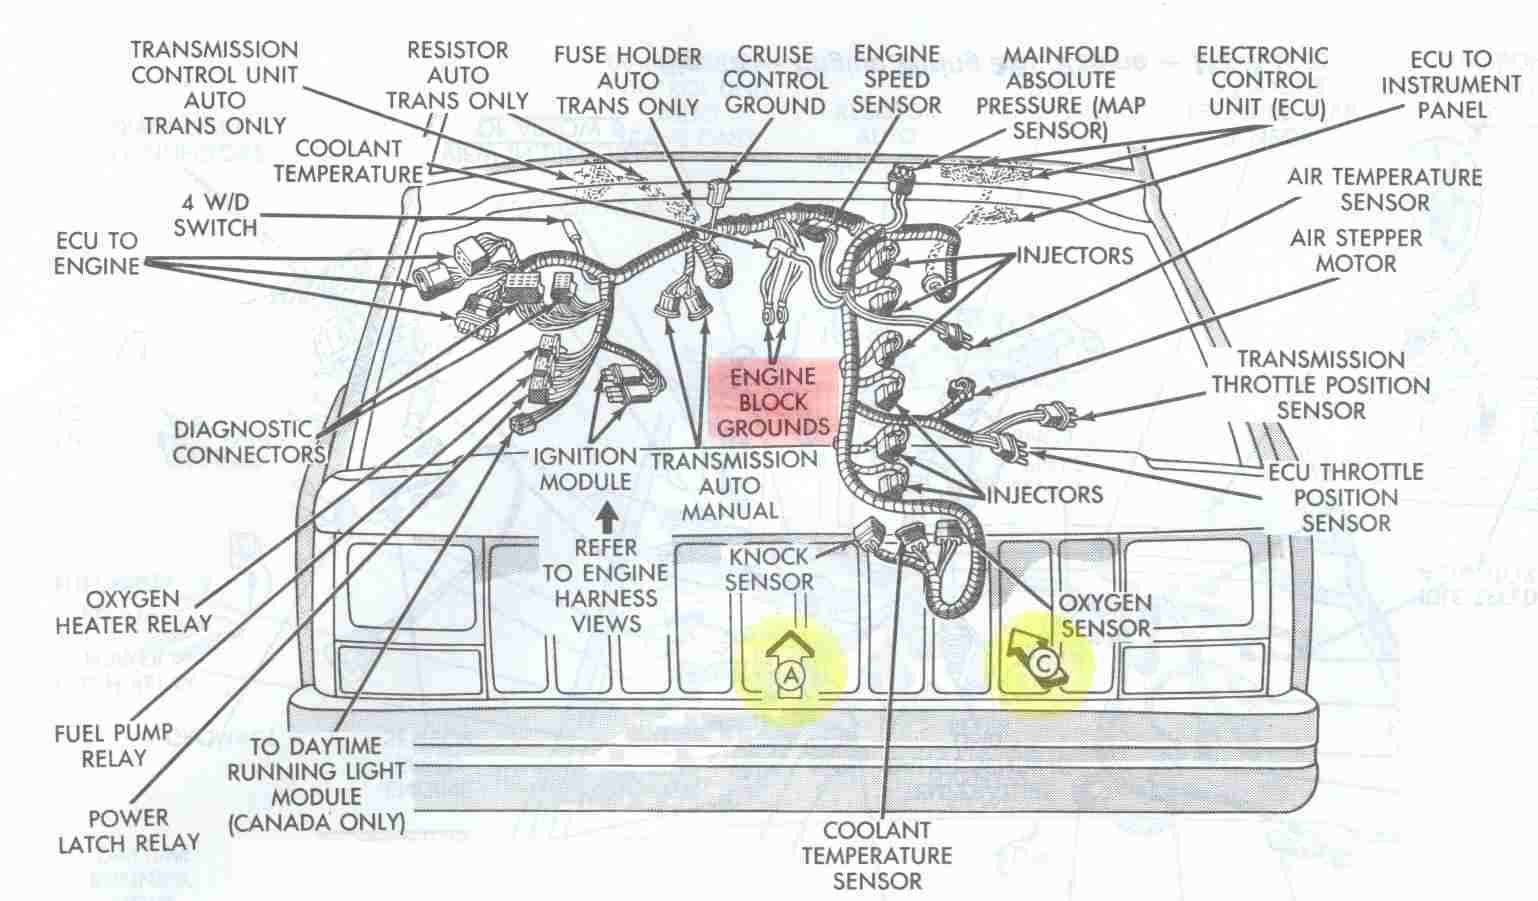 Engine Bay schematic showing major electrical ground points for 4.0L ...